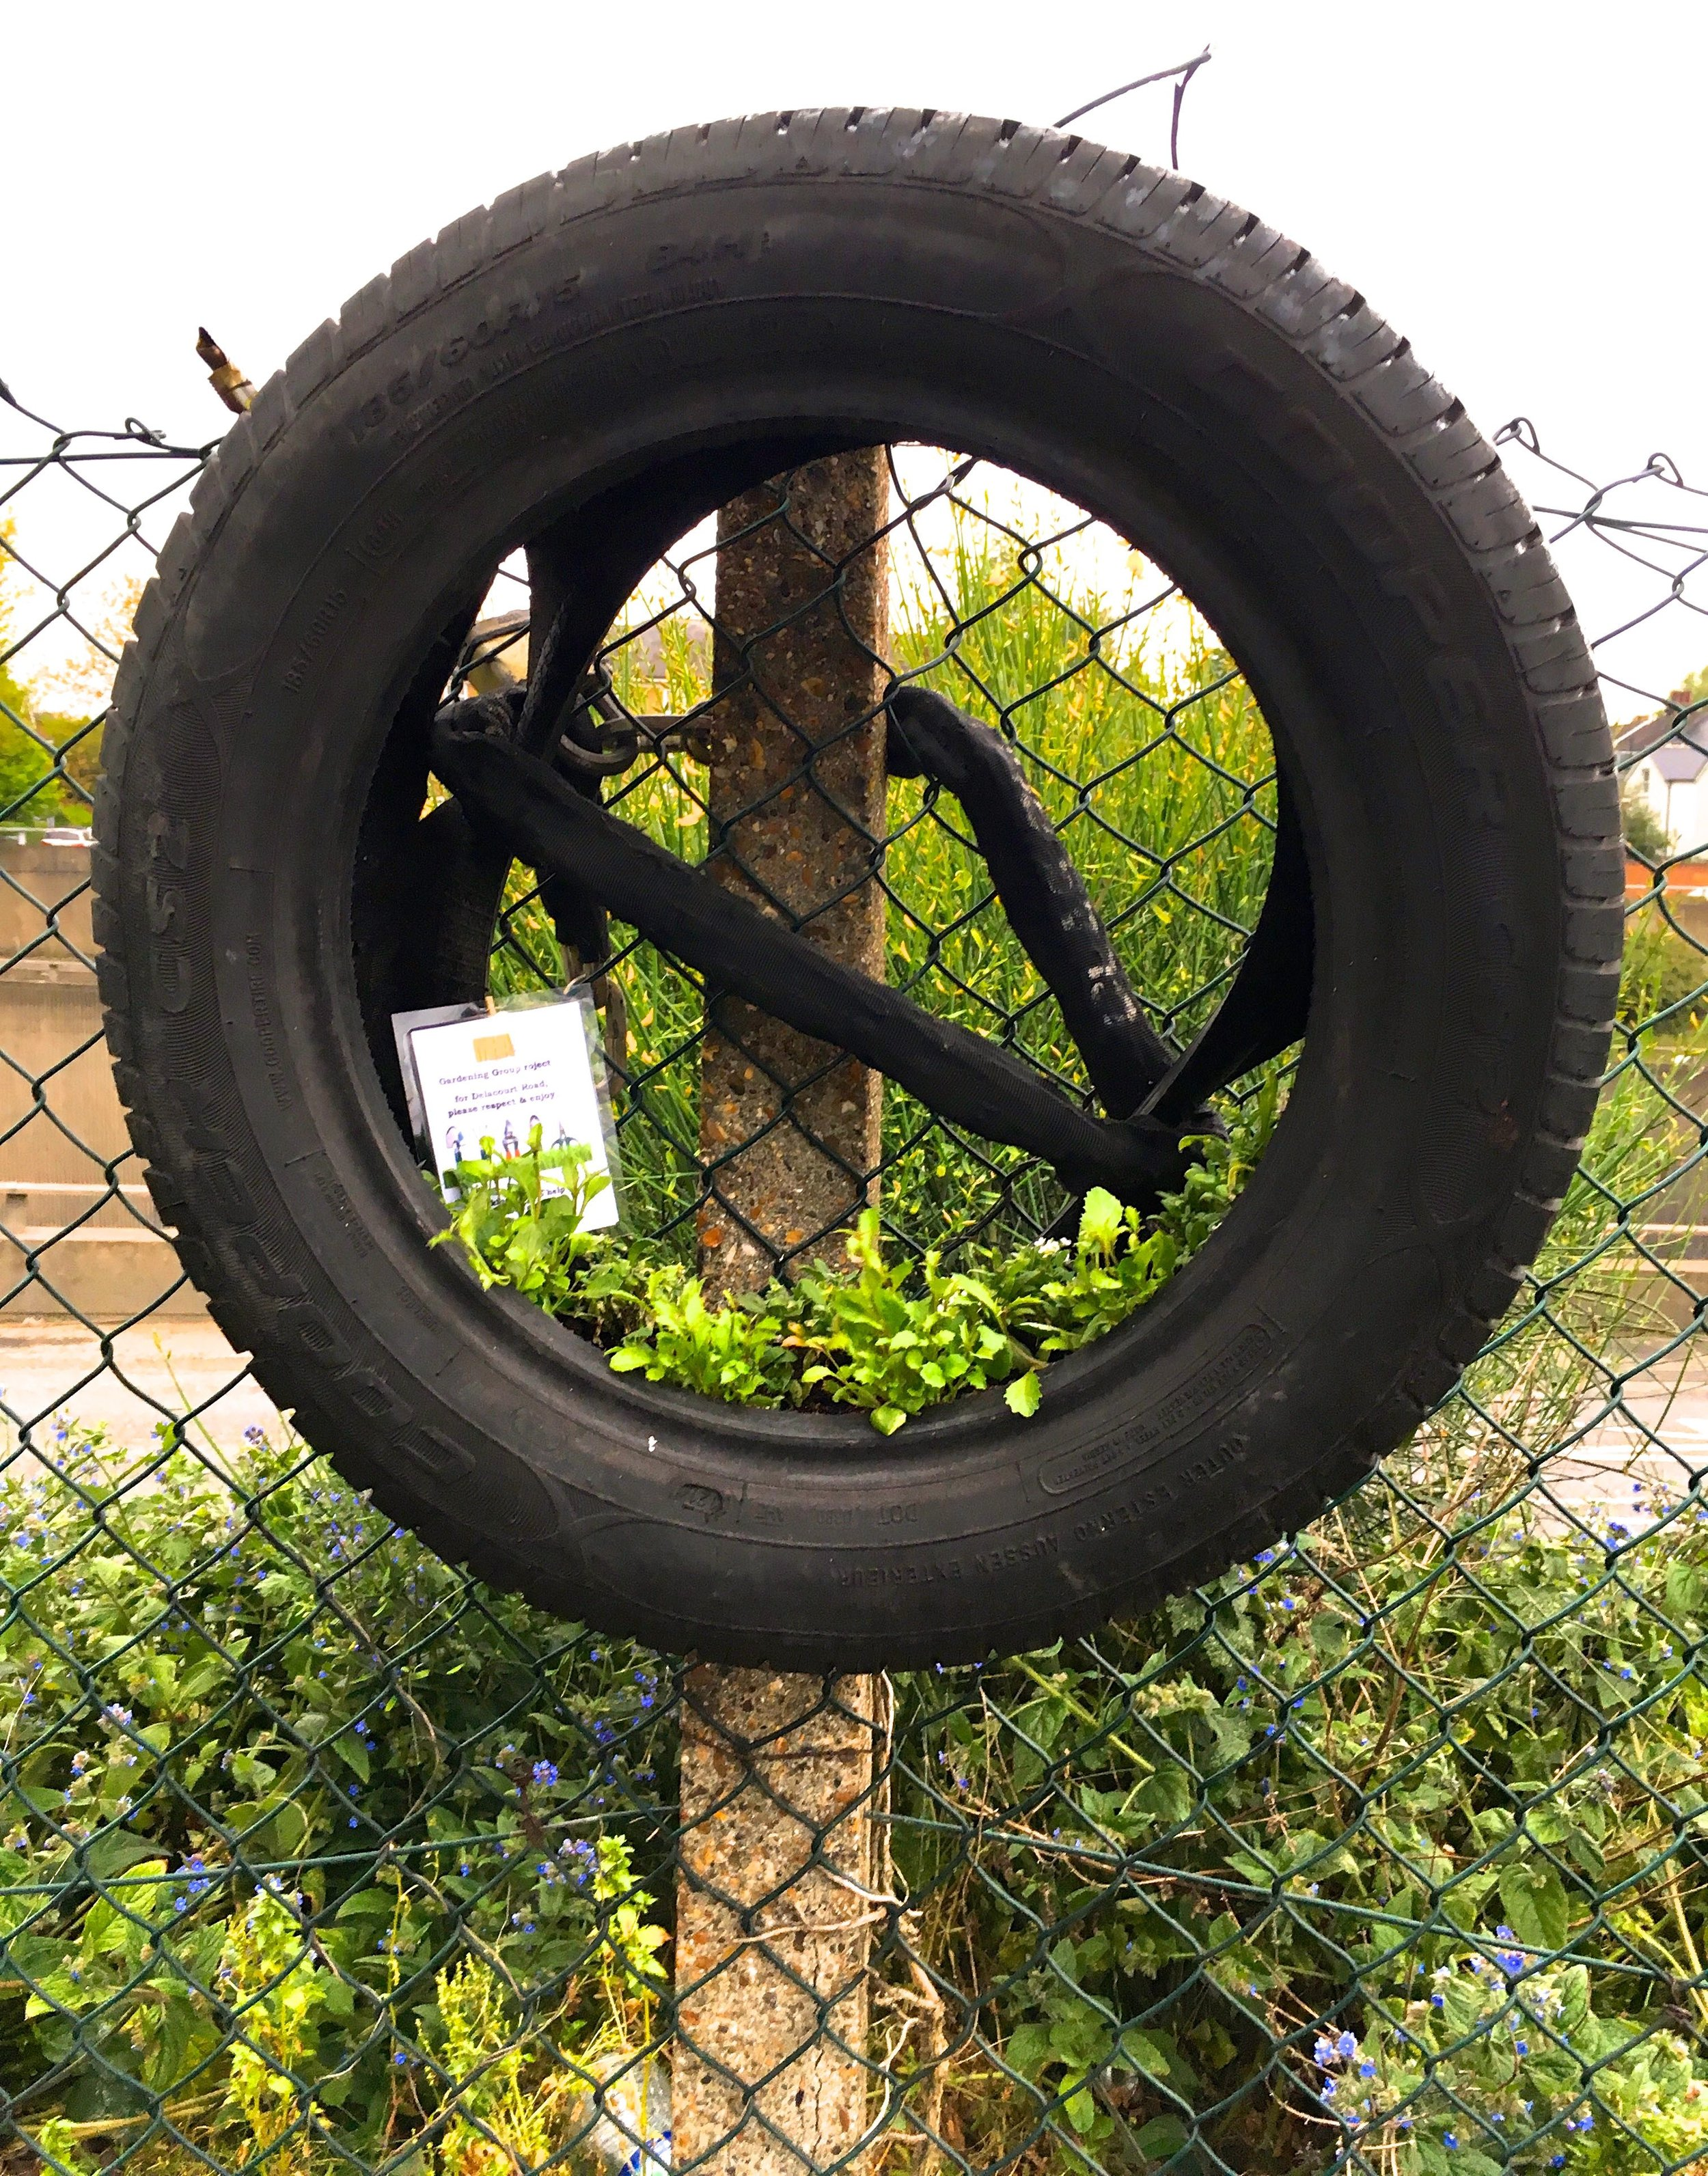 A DECORATIVE TYRE as part of the Delacourt Road Gardening Group Project in Blackheath South London